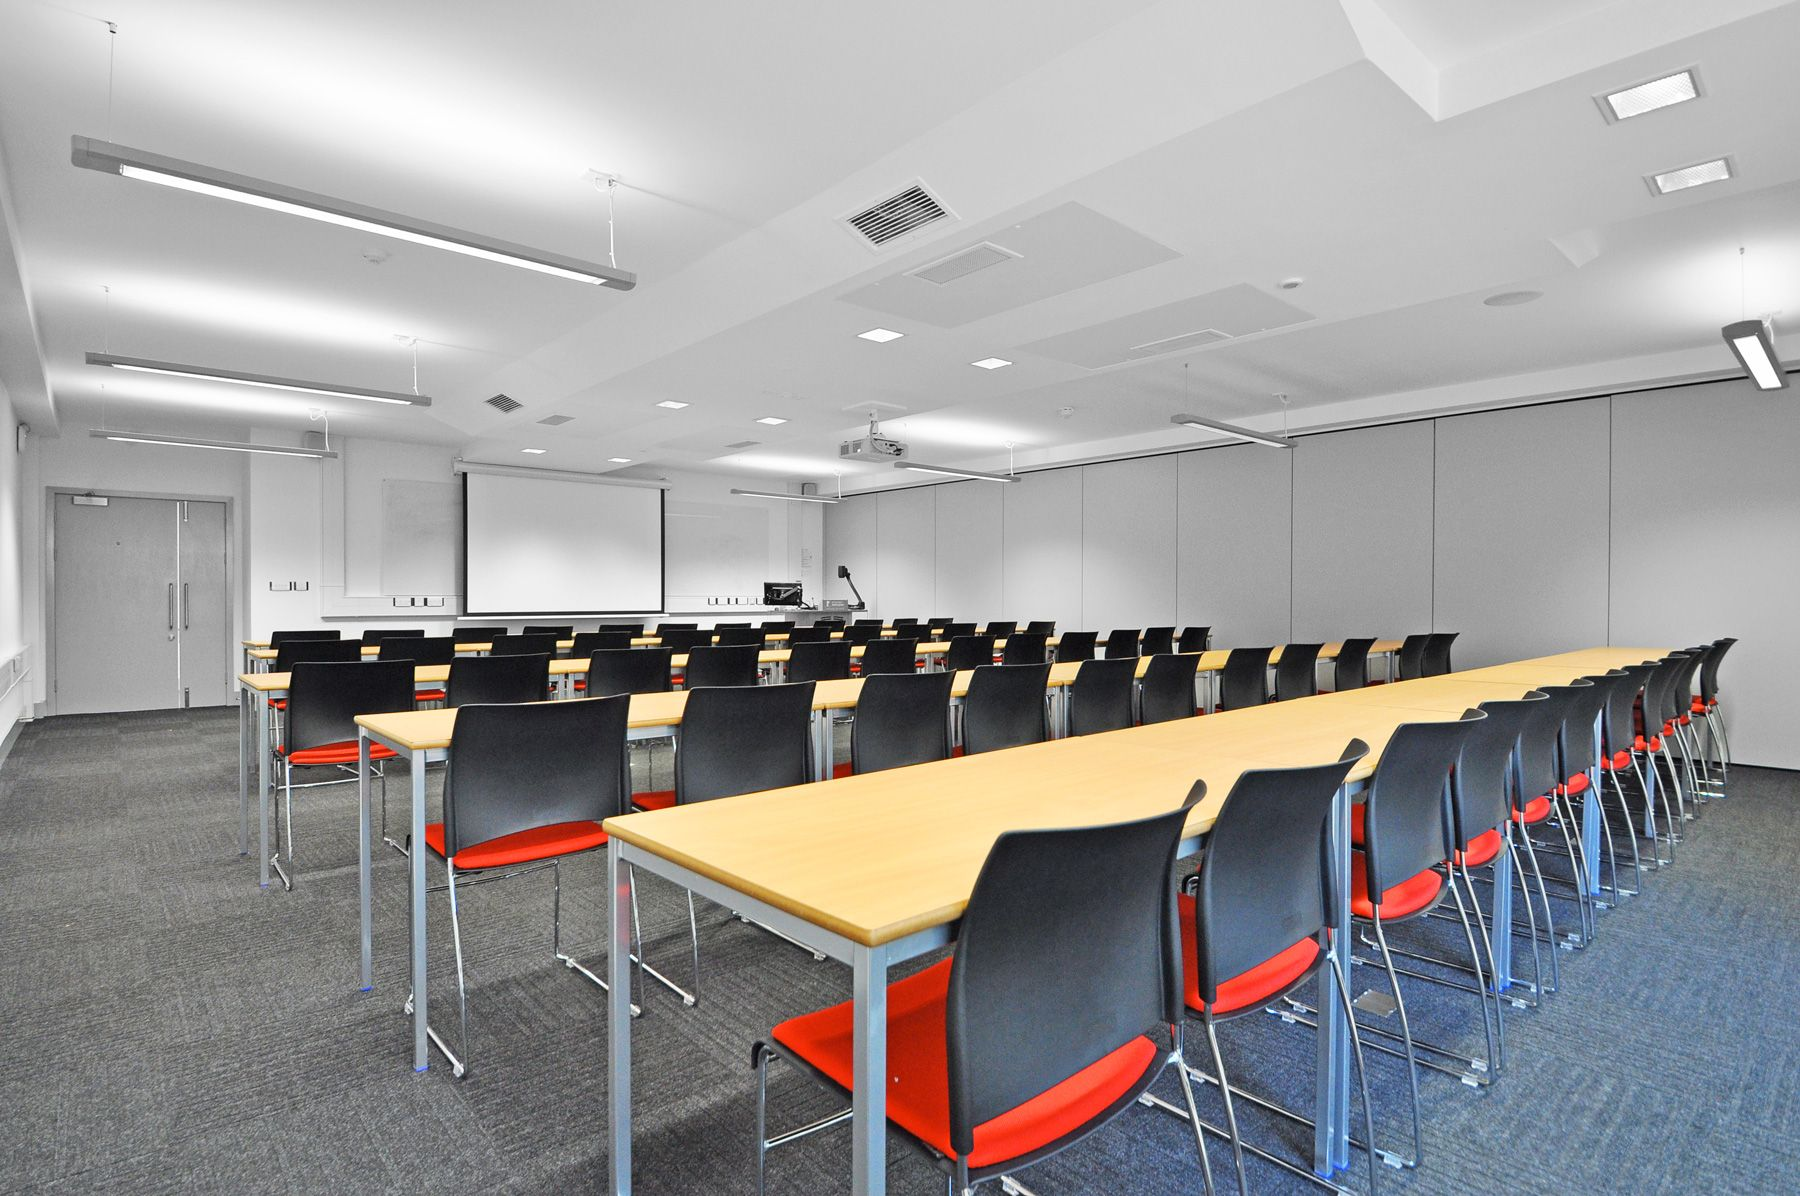 The University of Nottingham - The University of Nottingham - Highfield House: bofessentials welded steel desks with Verco sting chairs.